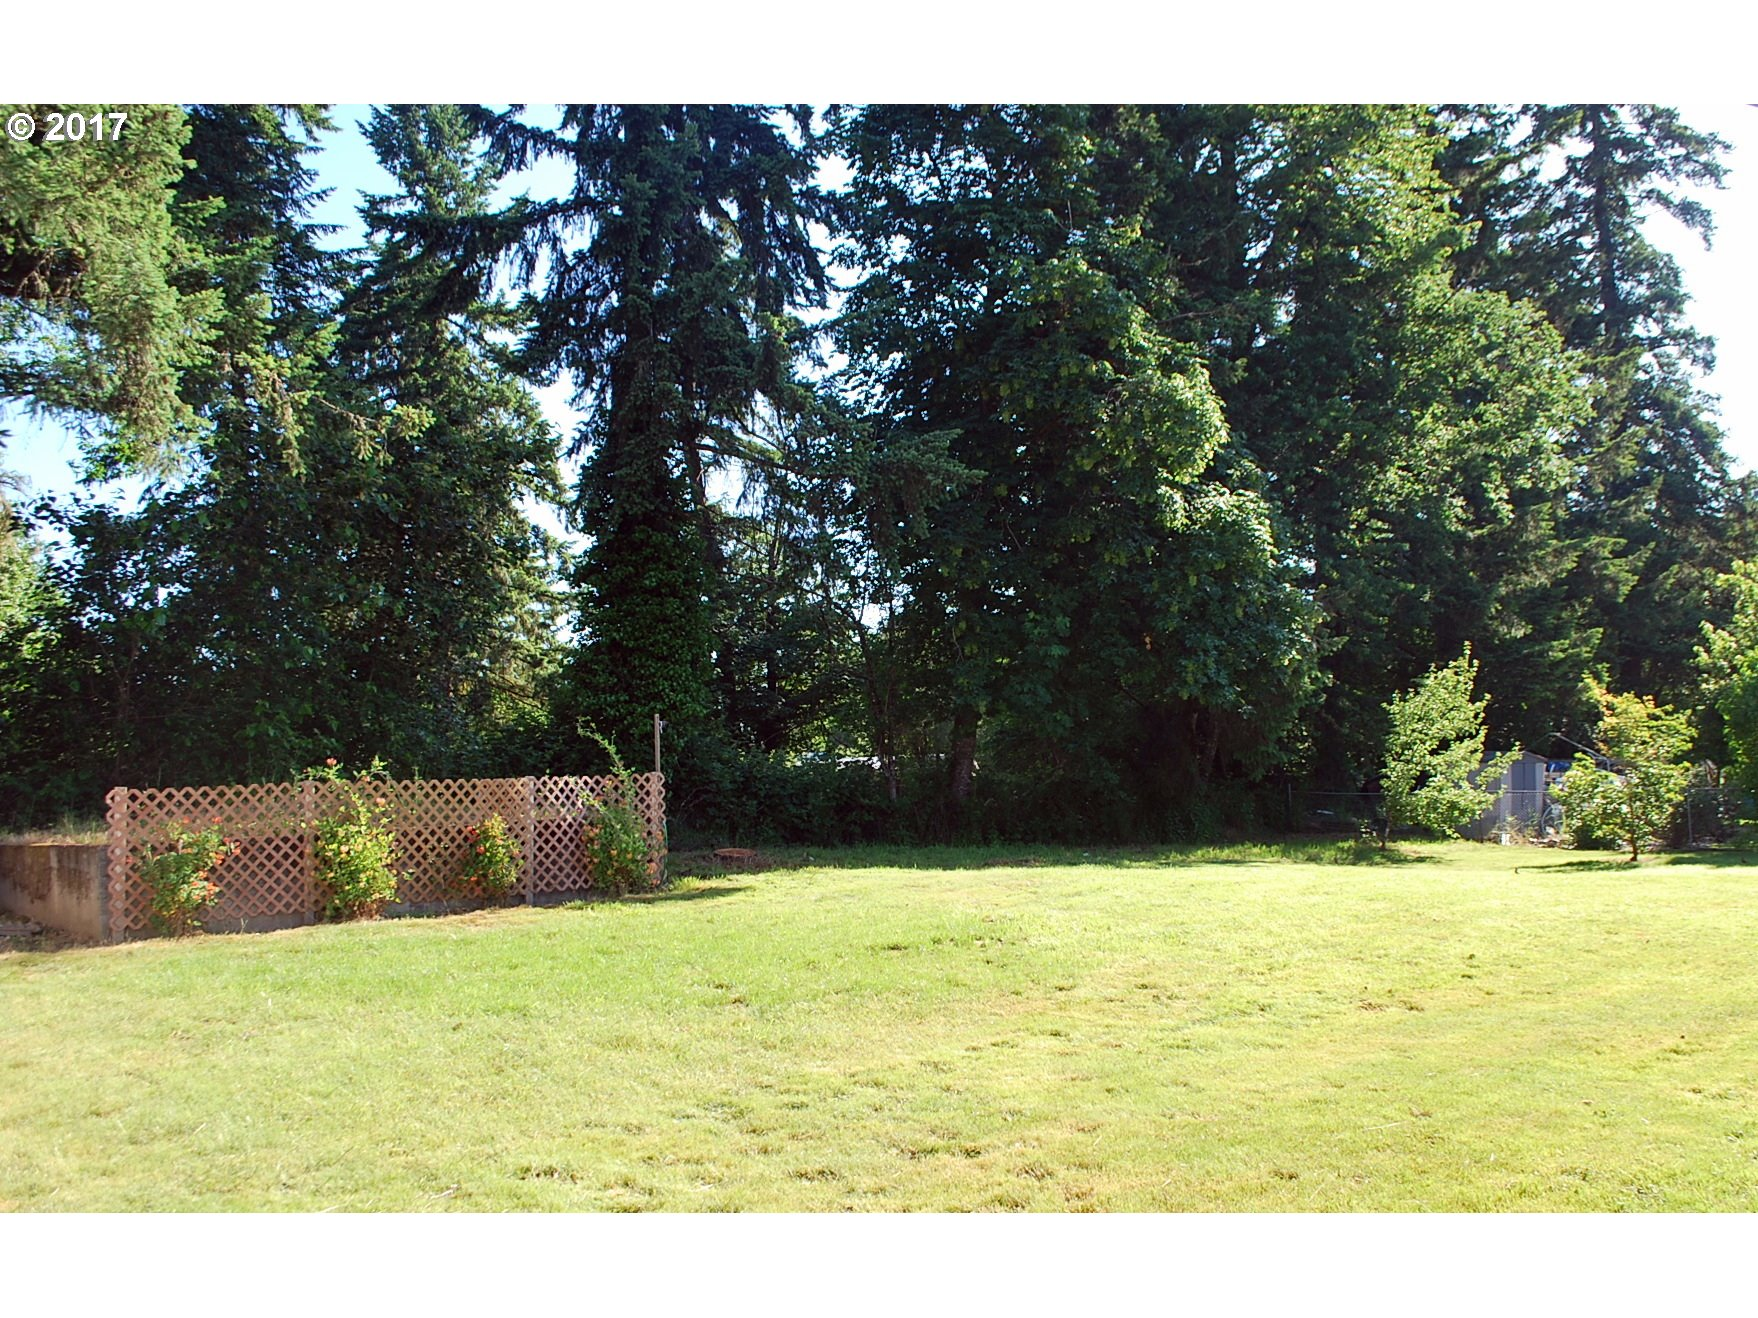 33847 SHAMROCK LN Scappoose, OR 97056 - MLS #: 17278859